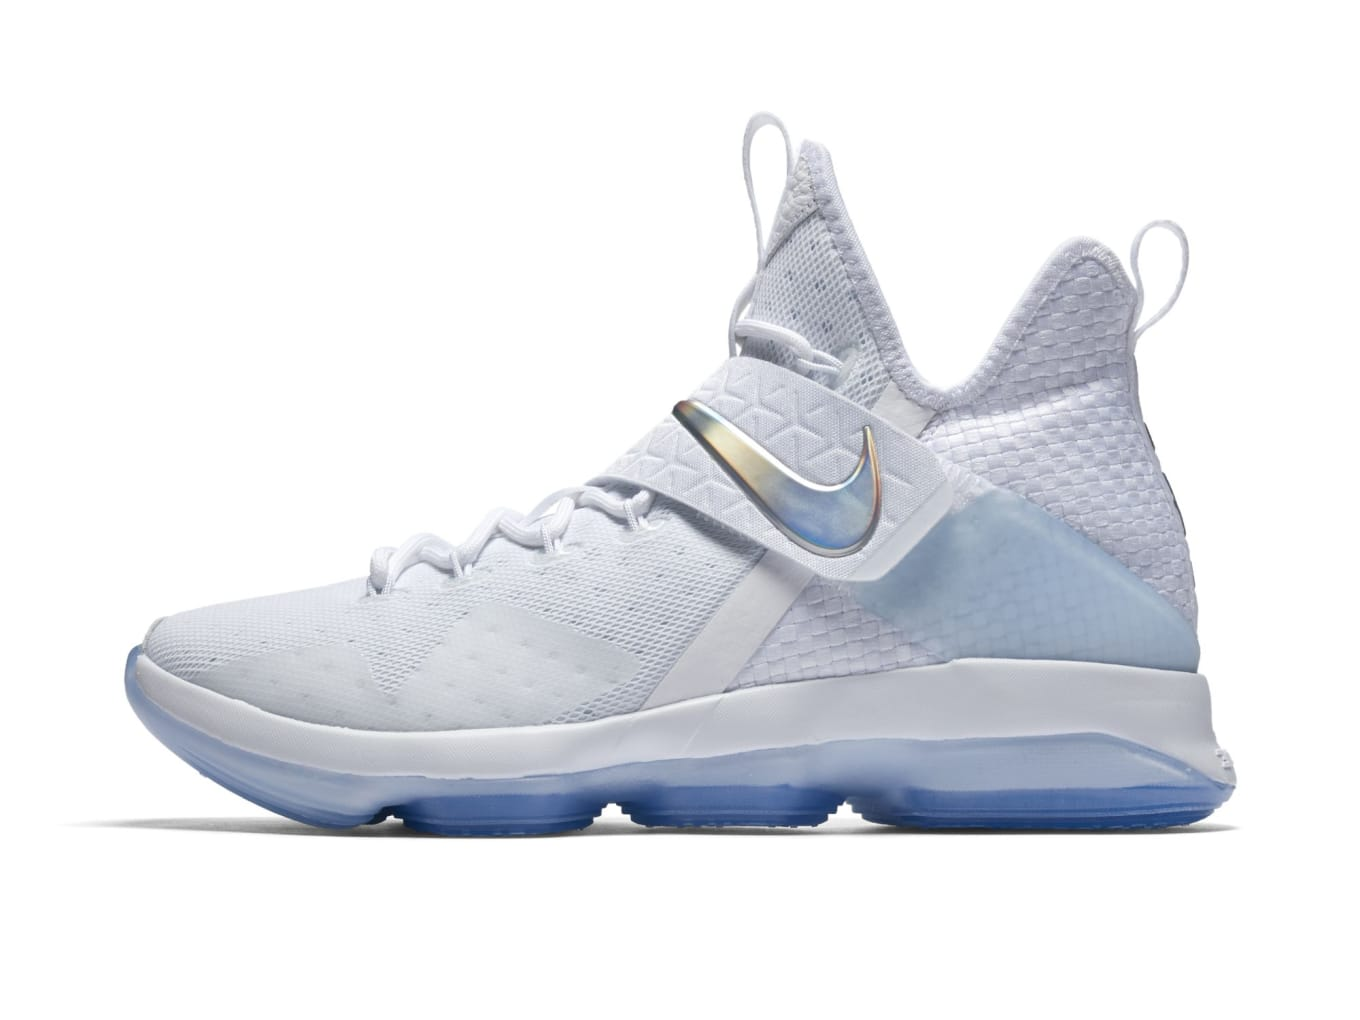 1712b3b95ff LeBron James  Signature Sneakers Shine For March Madness. All-white Nike  LeBron 14s.